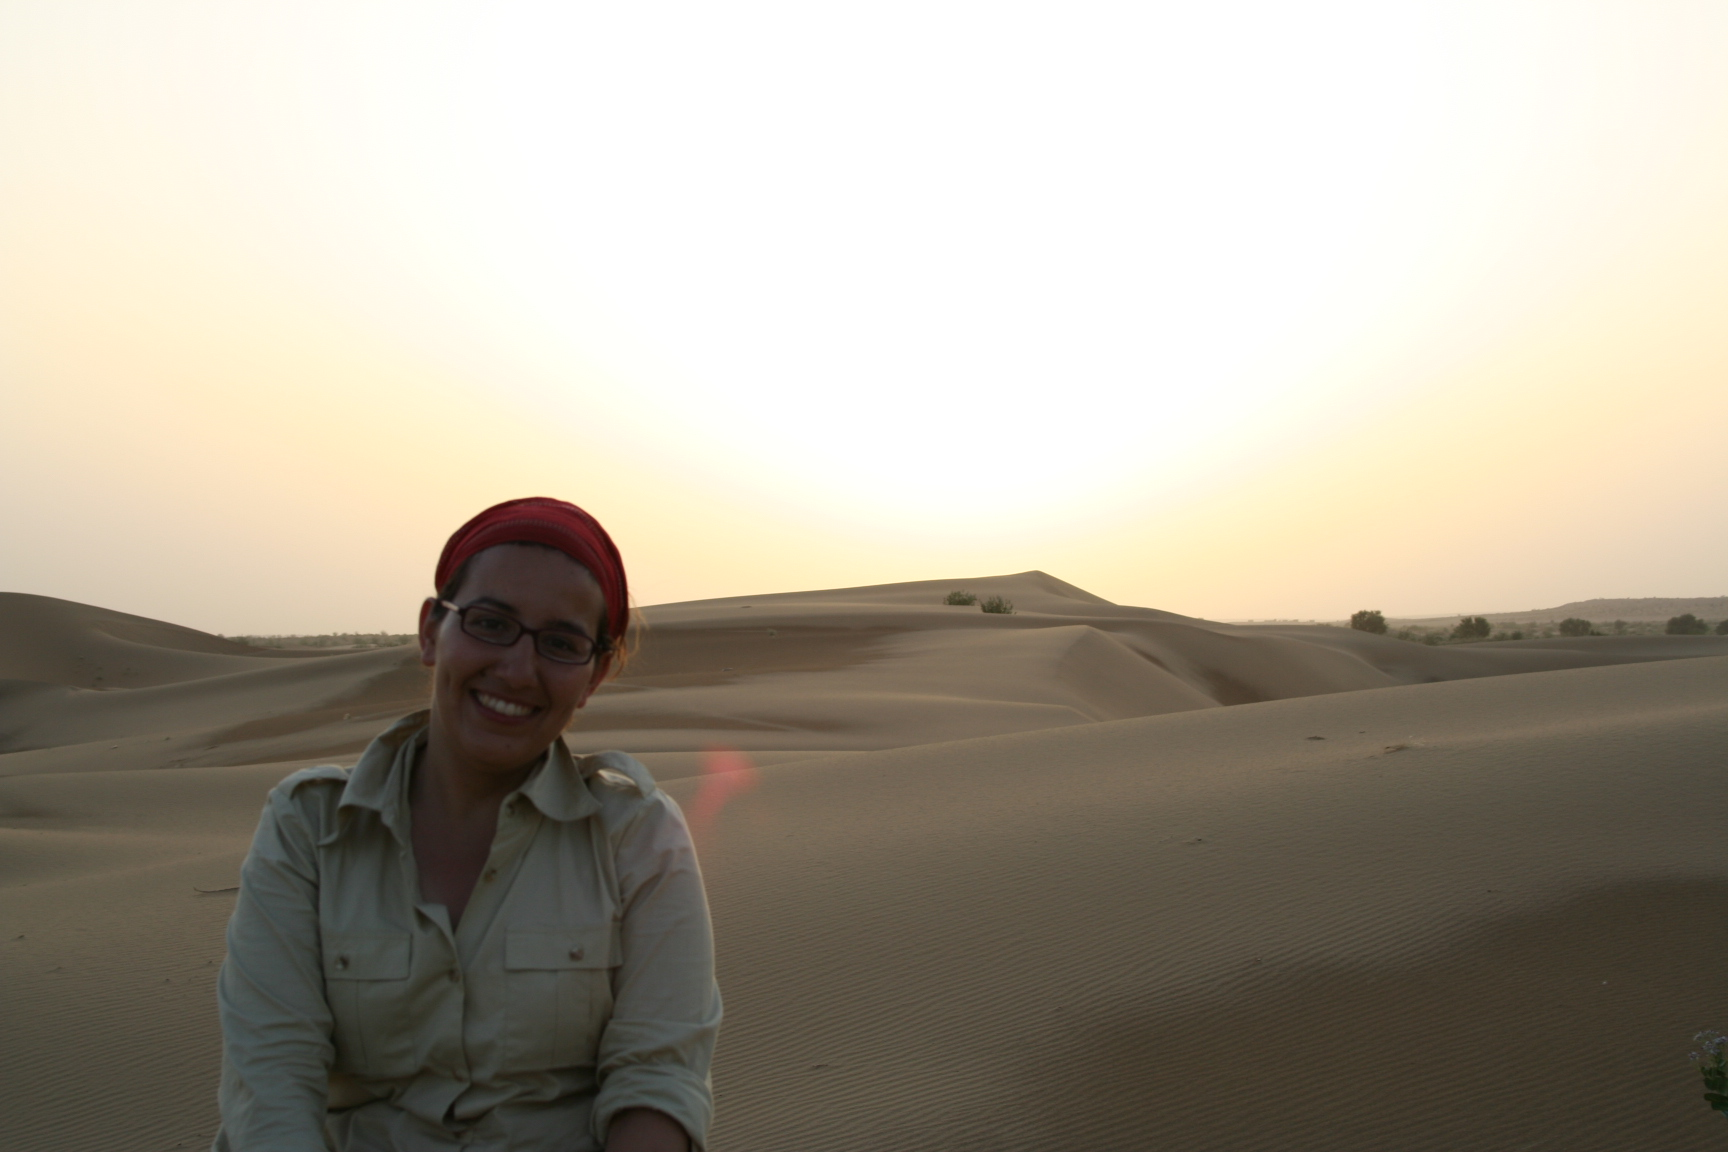 Jaisalmer - sunset in the desert